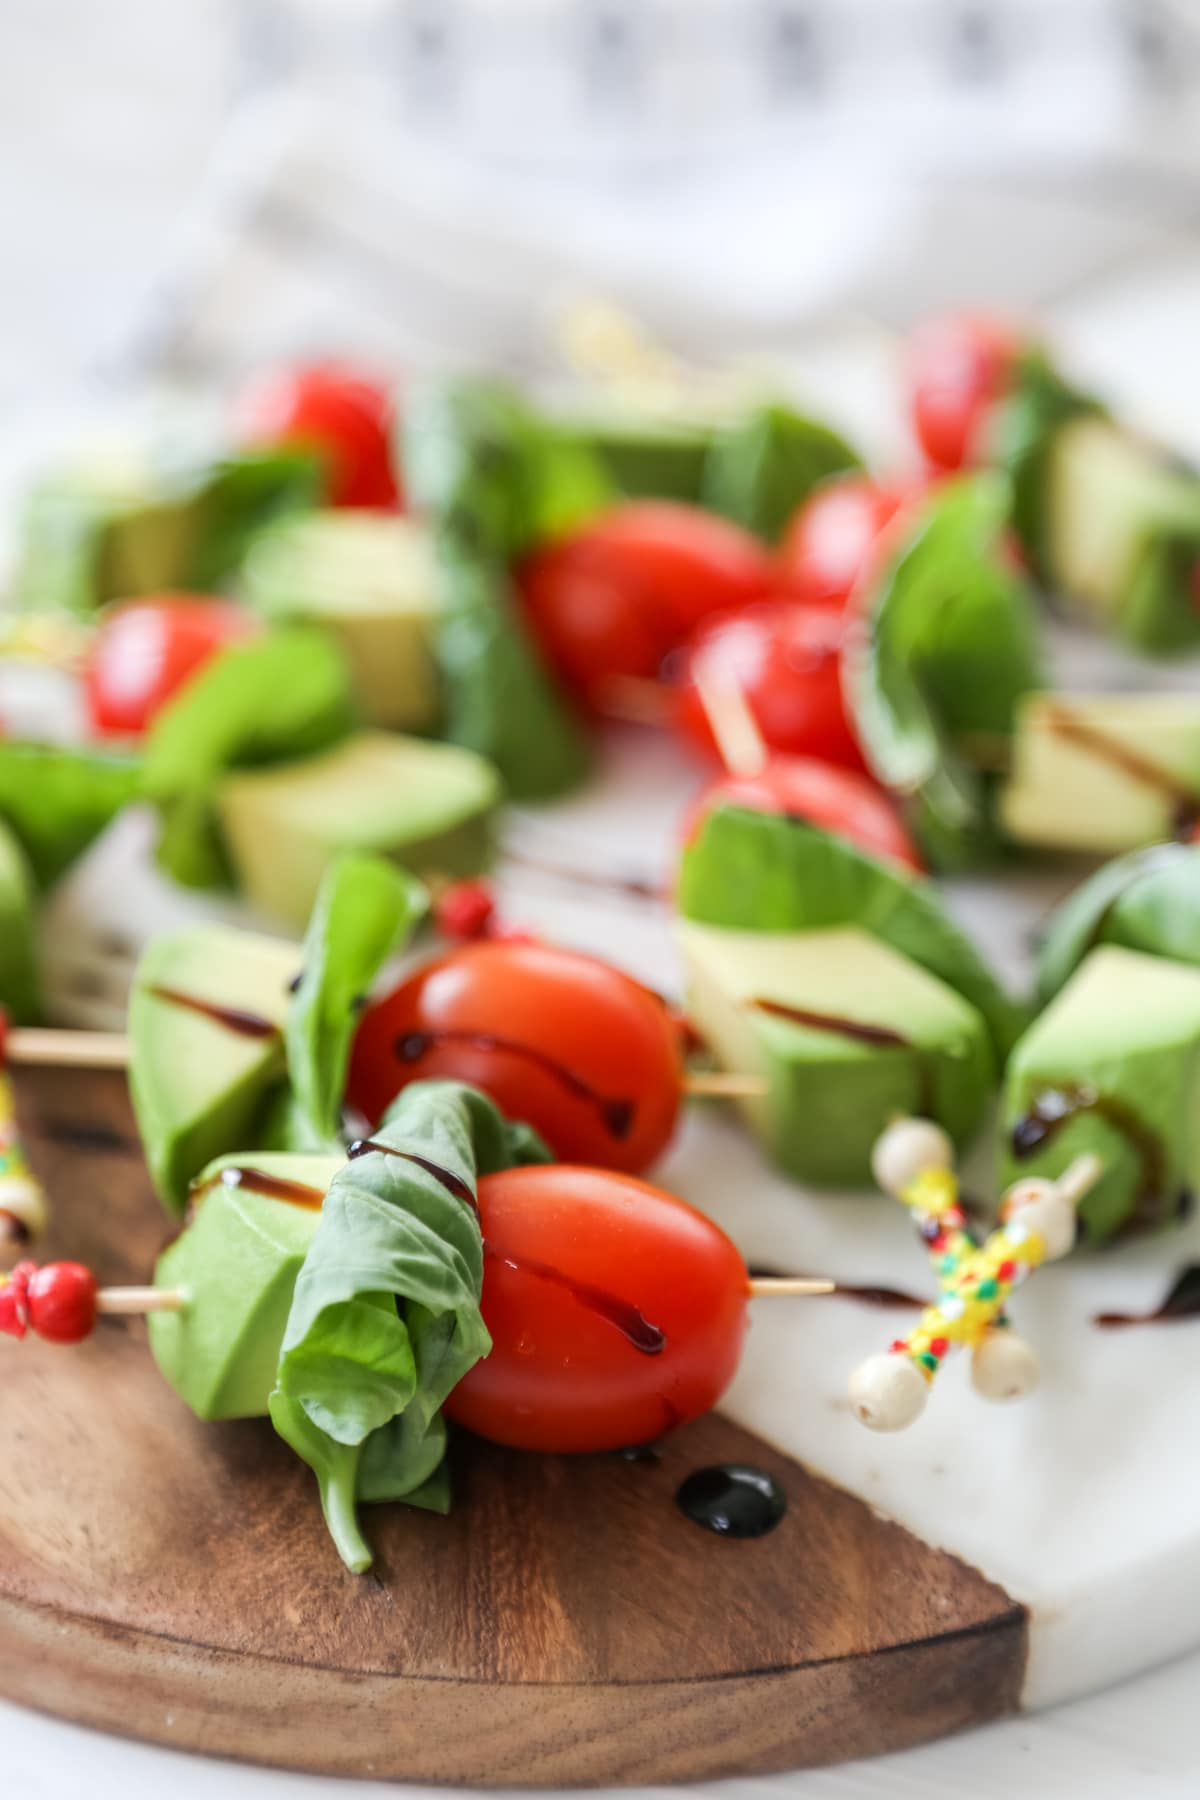 Avocado and tomato skewers with balsamic vinegar on a wood and marble board.